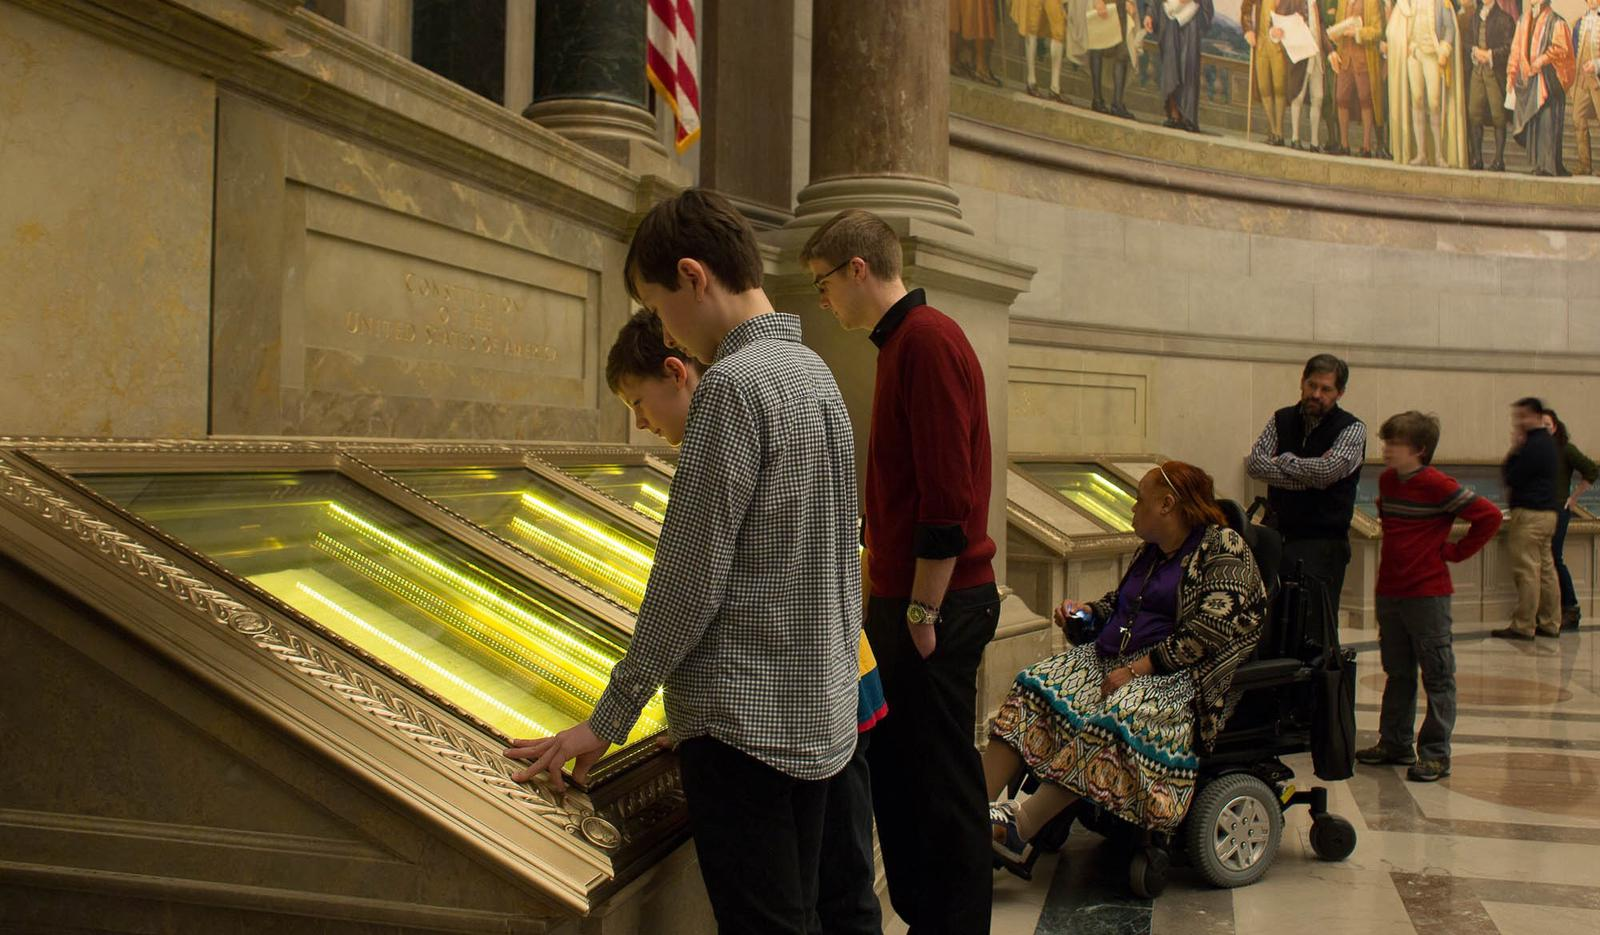 Visitors viewing the U.S. Constitution in the Rotunda for the Charters of Freedom